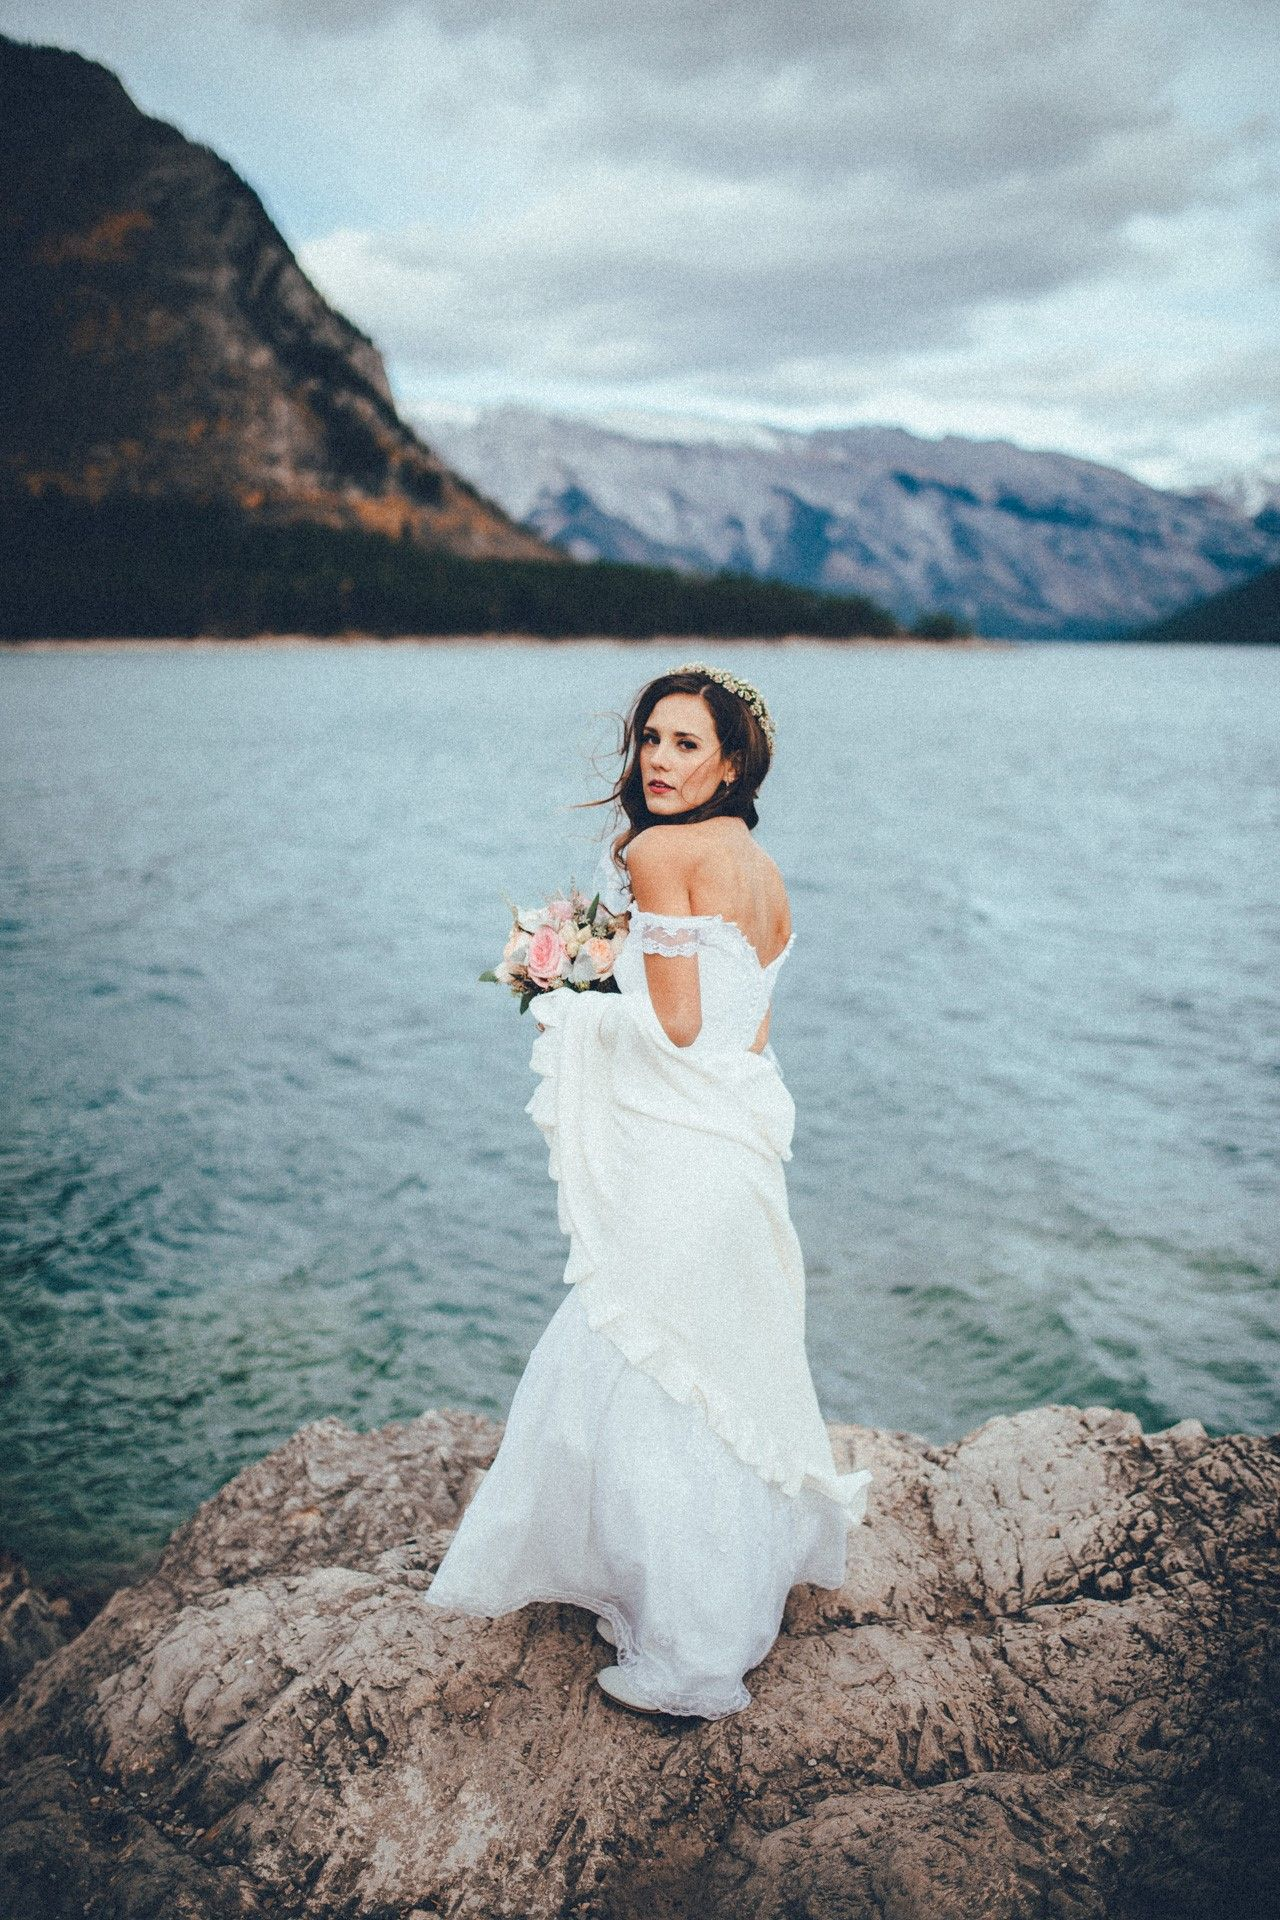 Elopement banff tricia victoria photography lolo love u marriage